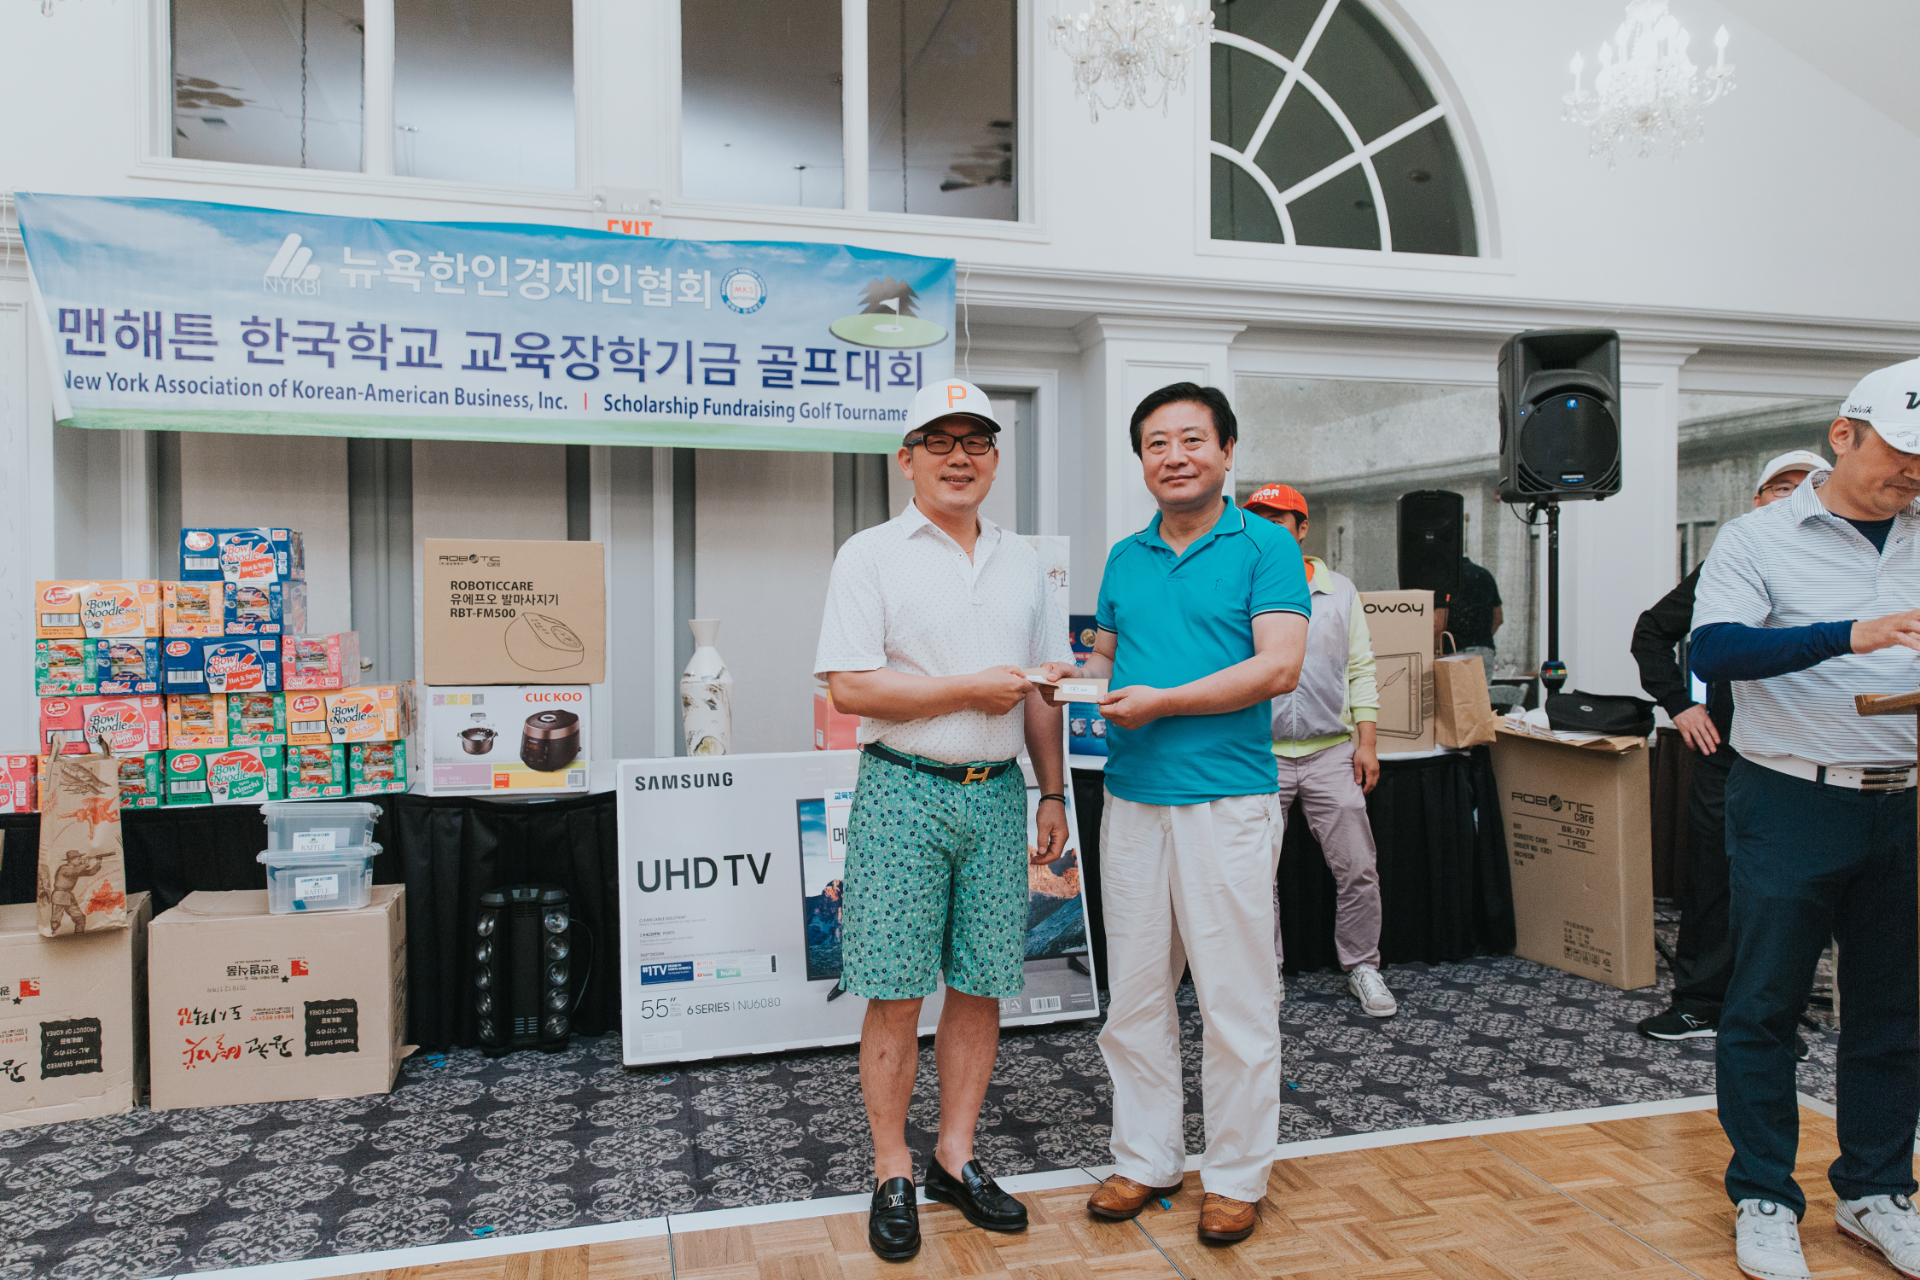 https://nykbi.com/new/wp-content/uploads/2019/07/190619-Scholarship-Fundraising-Golf-Tournament-053.jpg